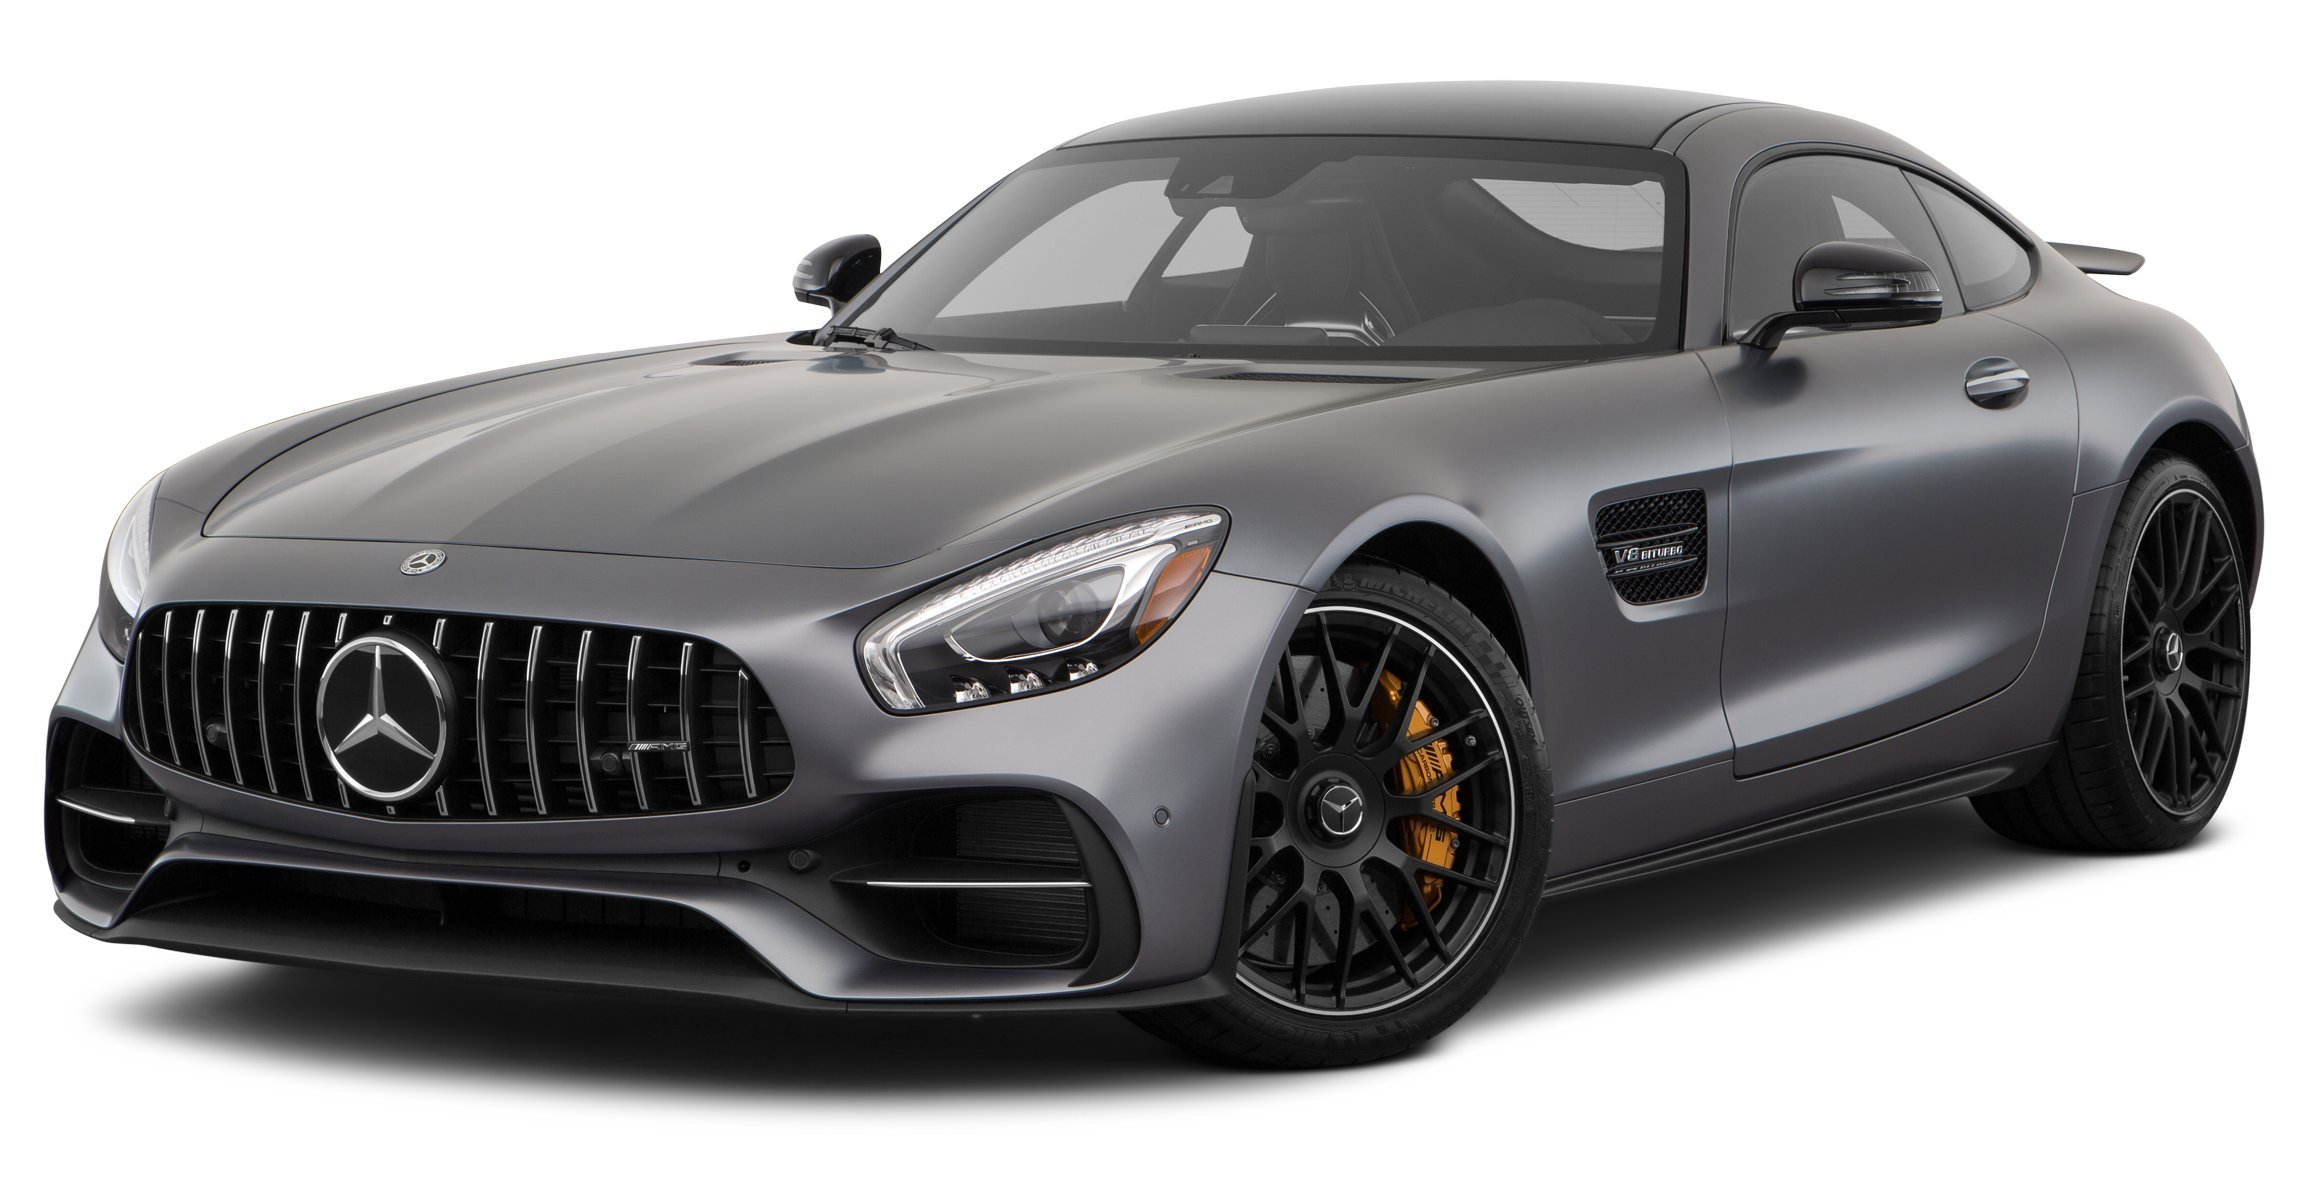 2018 mercedes benz amg gt r reviews images for 2018 mercedes benz amg gt